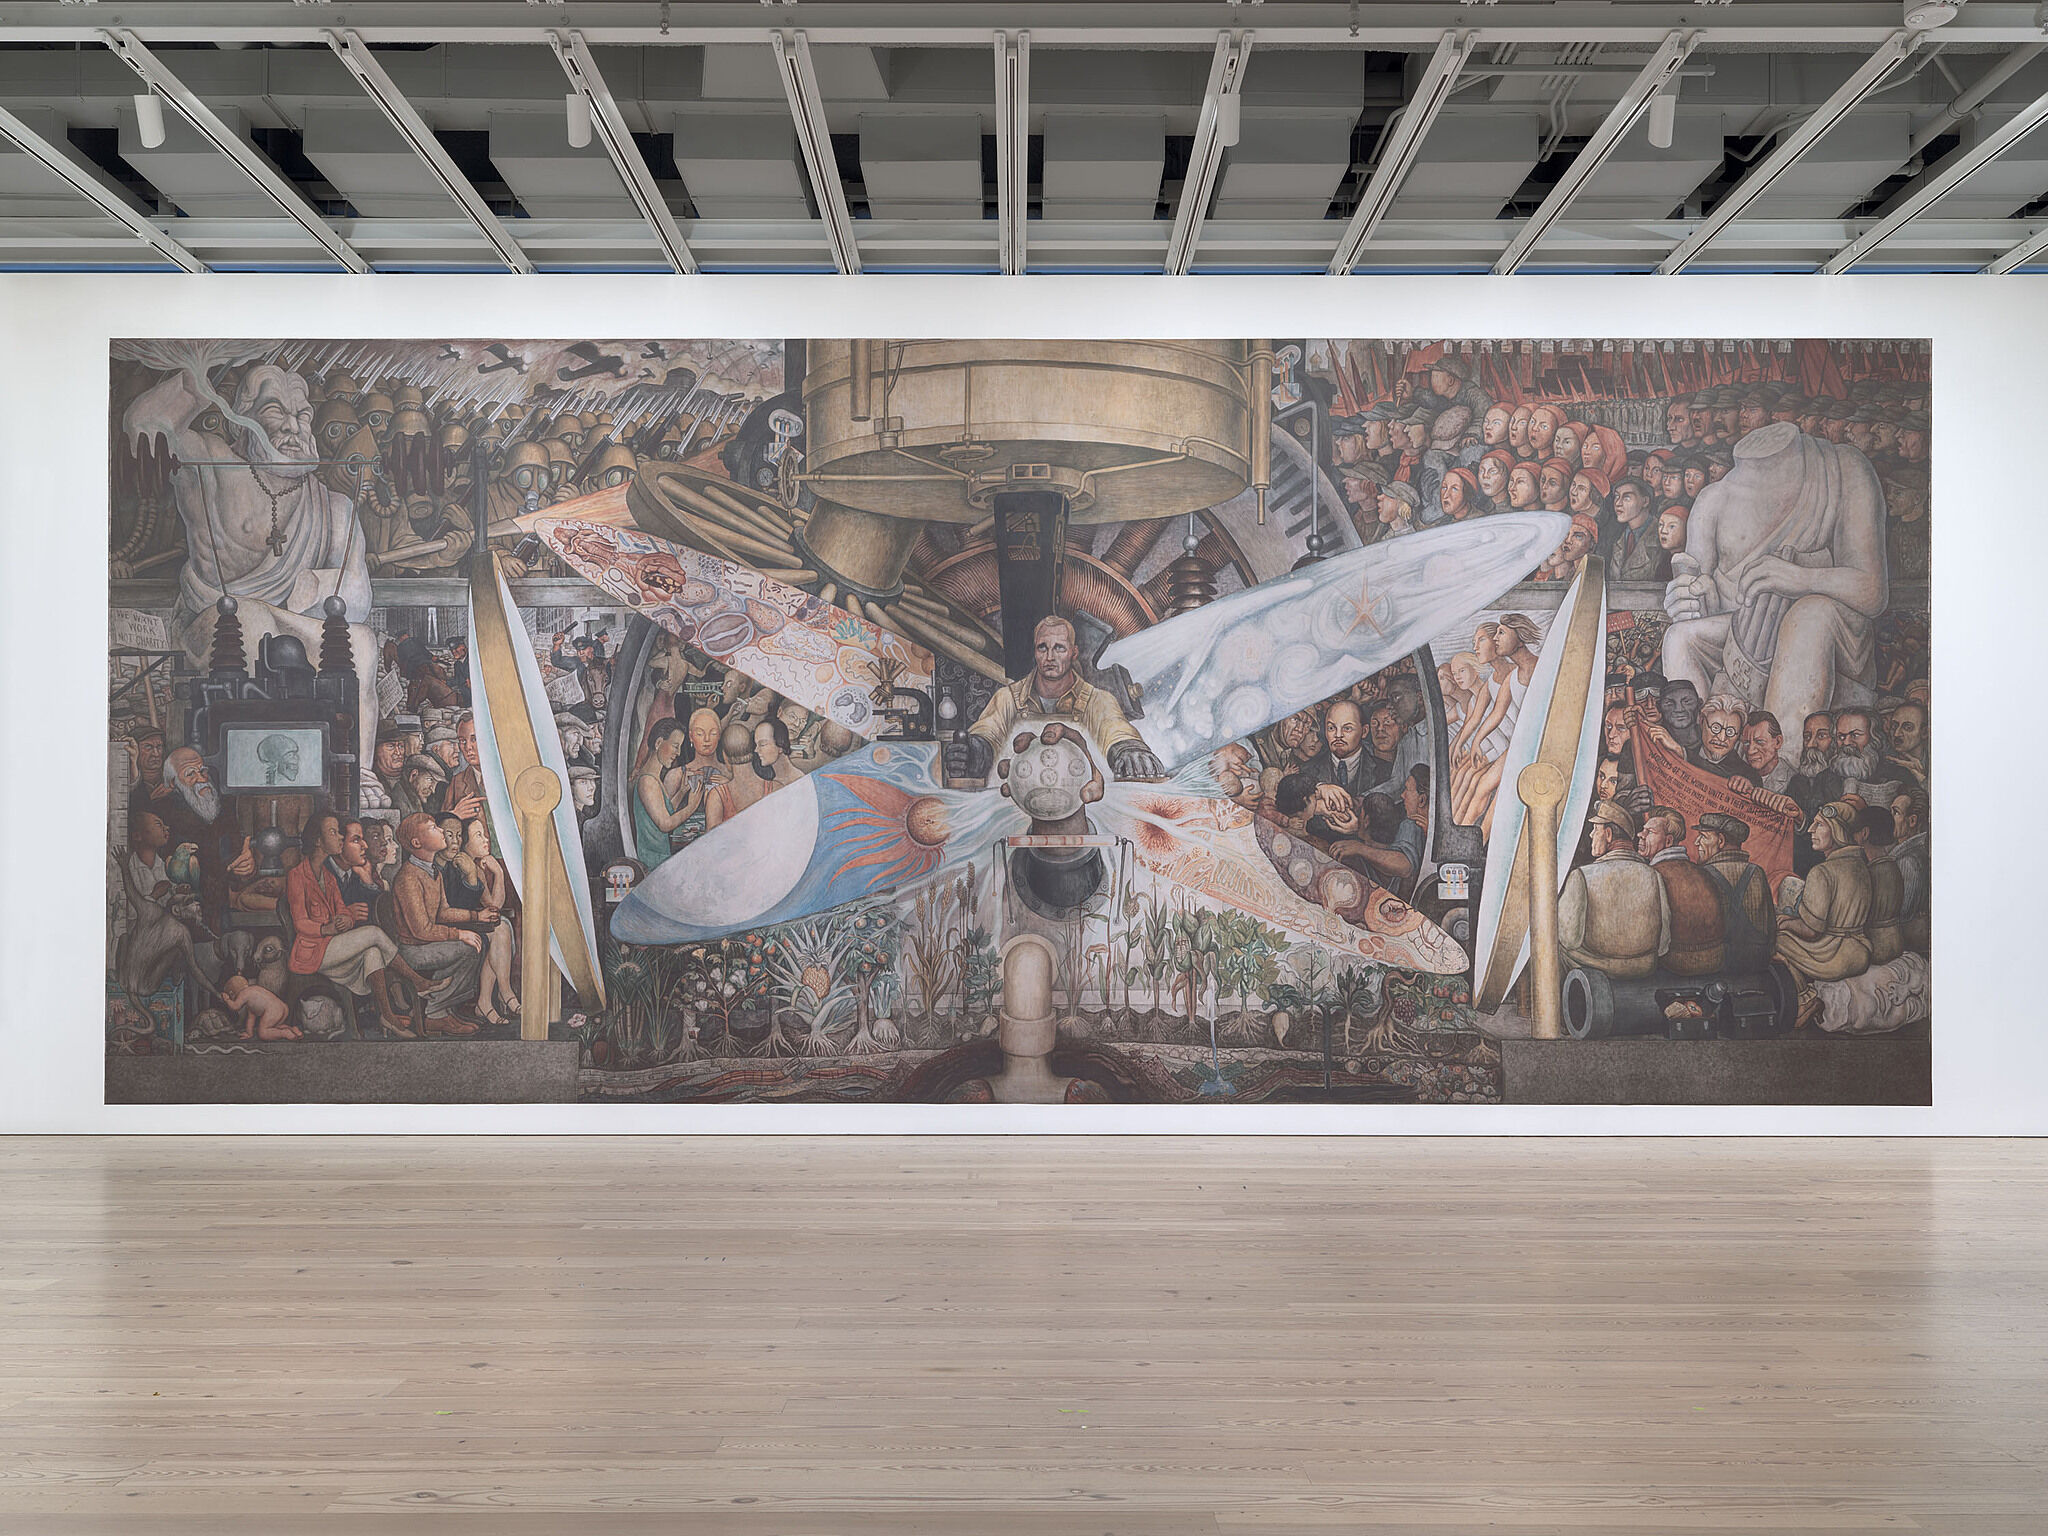 A photo of the Whitney galleries with a large mural reproduction on the wall.